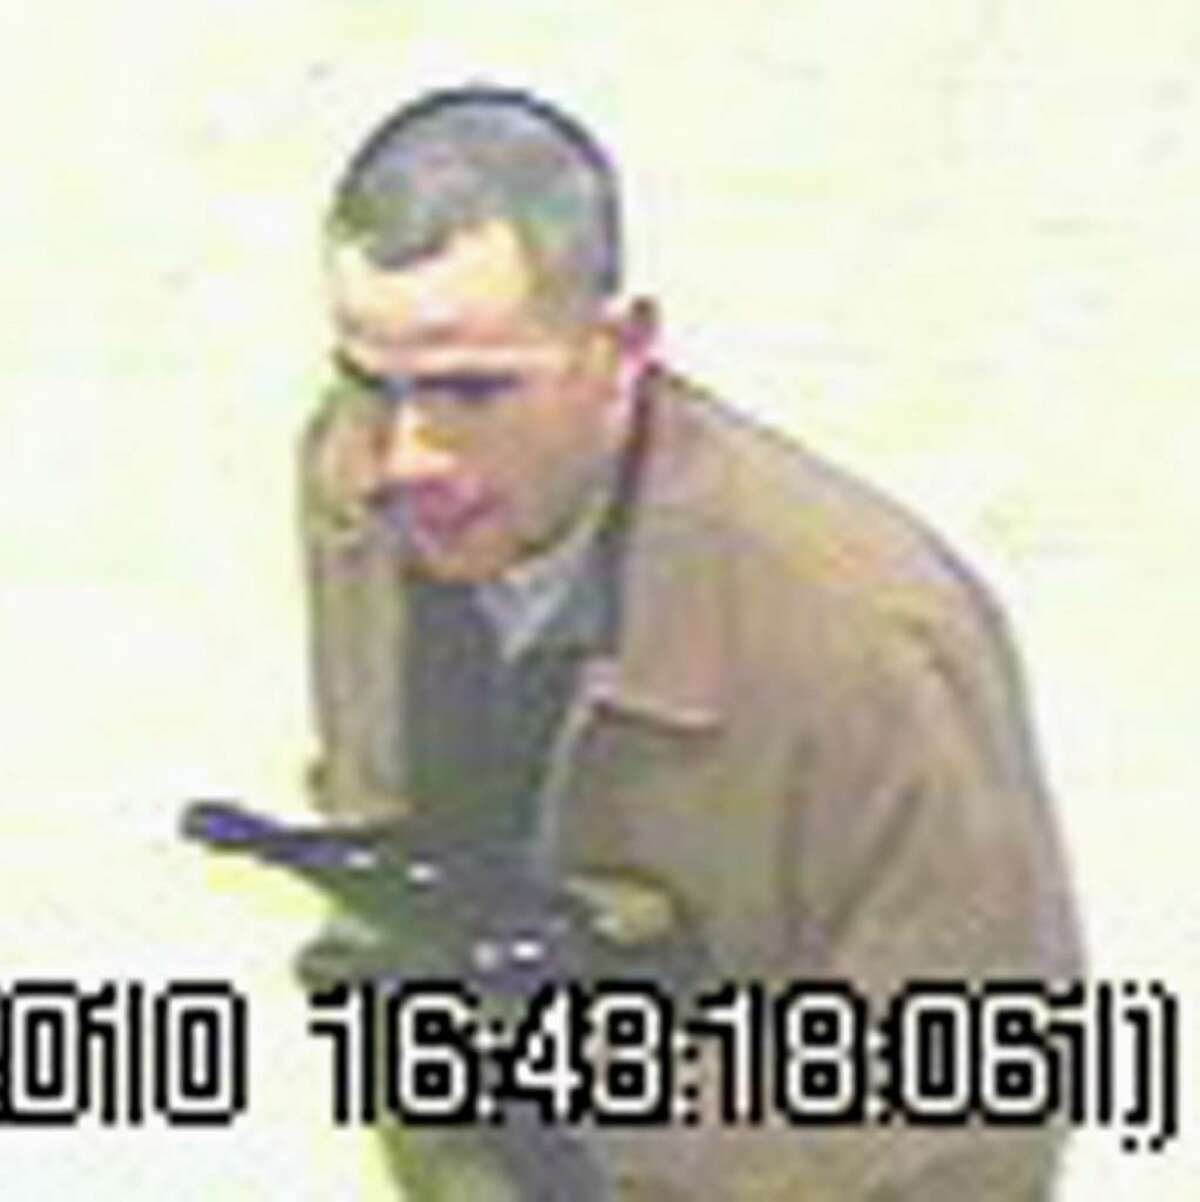 Surveillance camera images of man suspected of spending spree with stolen credit cards. The suspect is described as a white man, about 6 feet tall with a medium build and very short or thinning dark hair. He was dressed in khaki pants and a tan jacket, and wore glasses when he was in one of the stores. He was driving a newer model four-door Jeep Liberty, gold or tan in color, with a retractable roof.